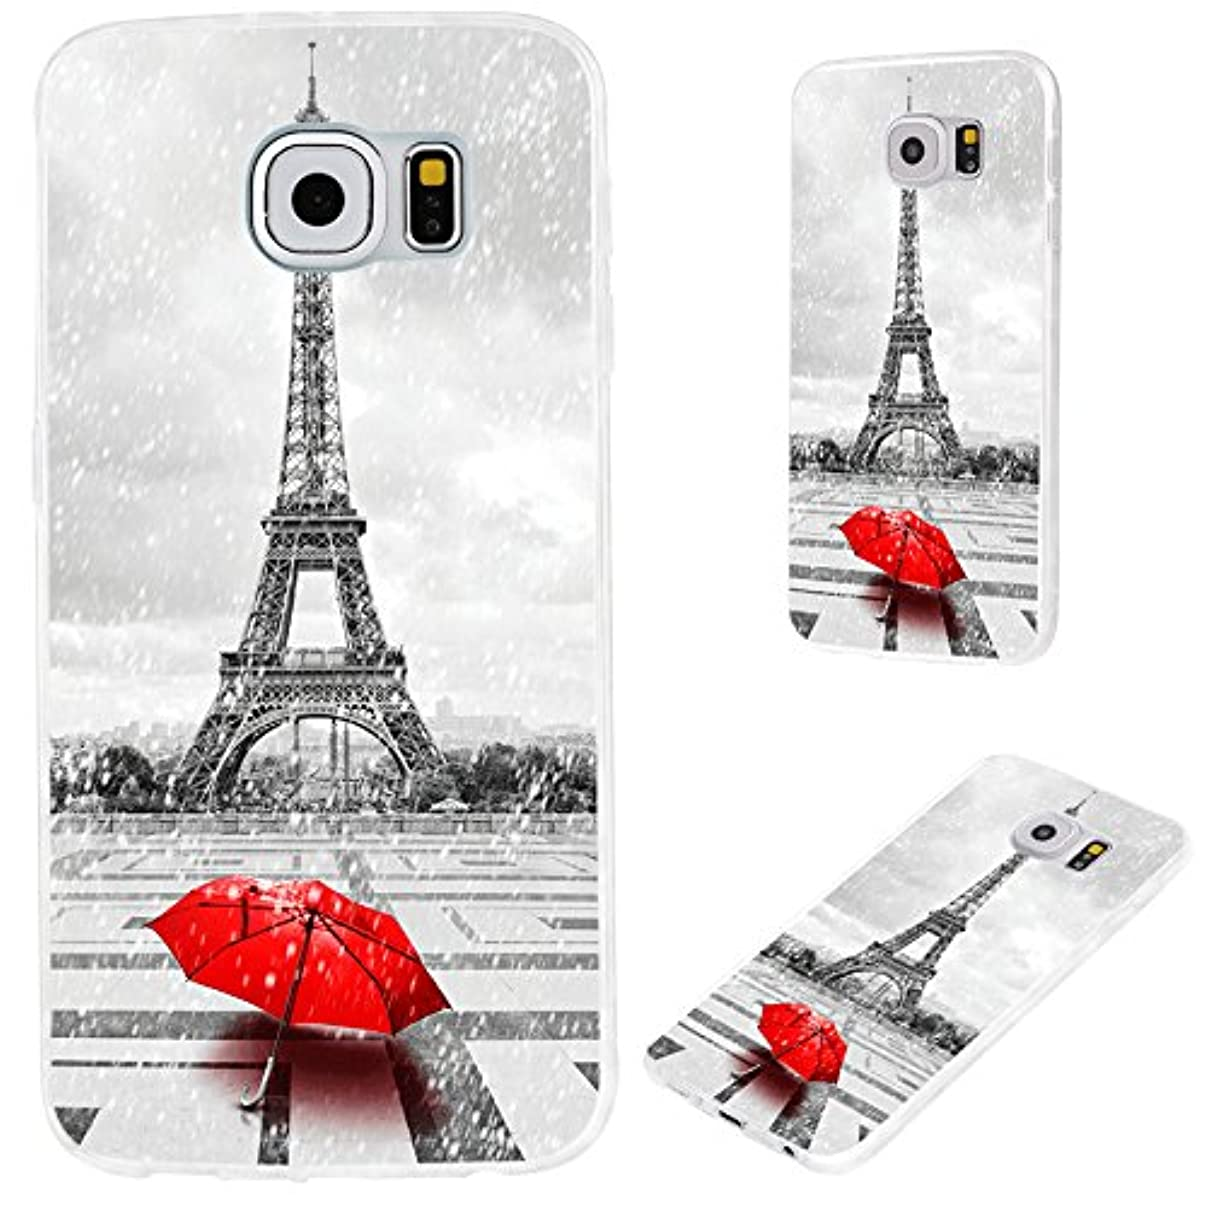 S6 case,Galaxy S6 case,Samsung S6 case, VoMotec [Original series] Anti-scratch Slim Flexible Soft TPU Protective Skin Cover Case For Samsung Galaxy S6,Eiffel tower in the rain with red umbrella